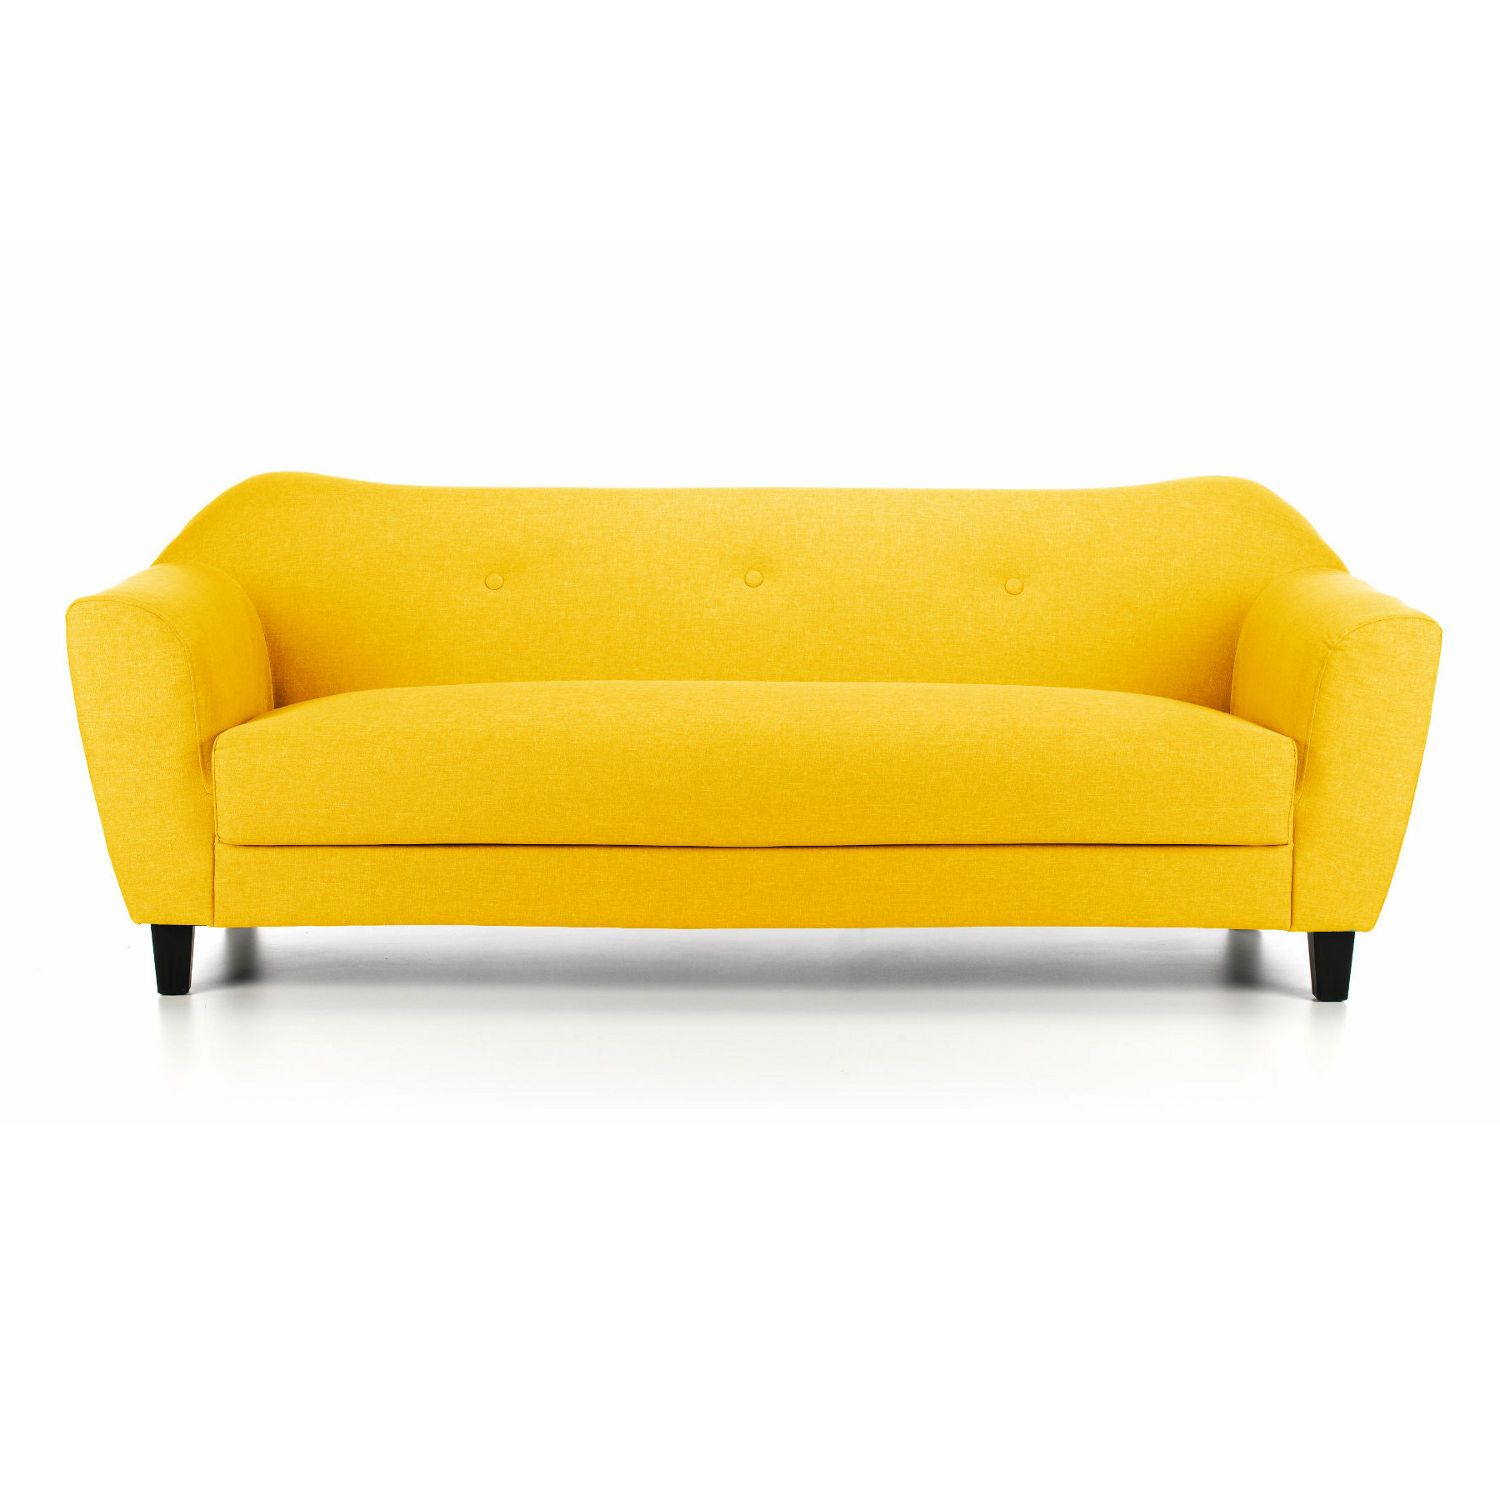 Cie 3 Seater Fabric Sofa Next Day Delivery From Worlds